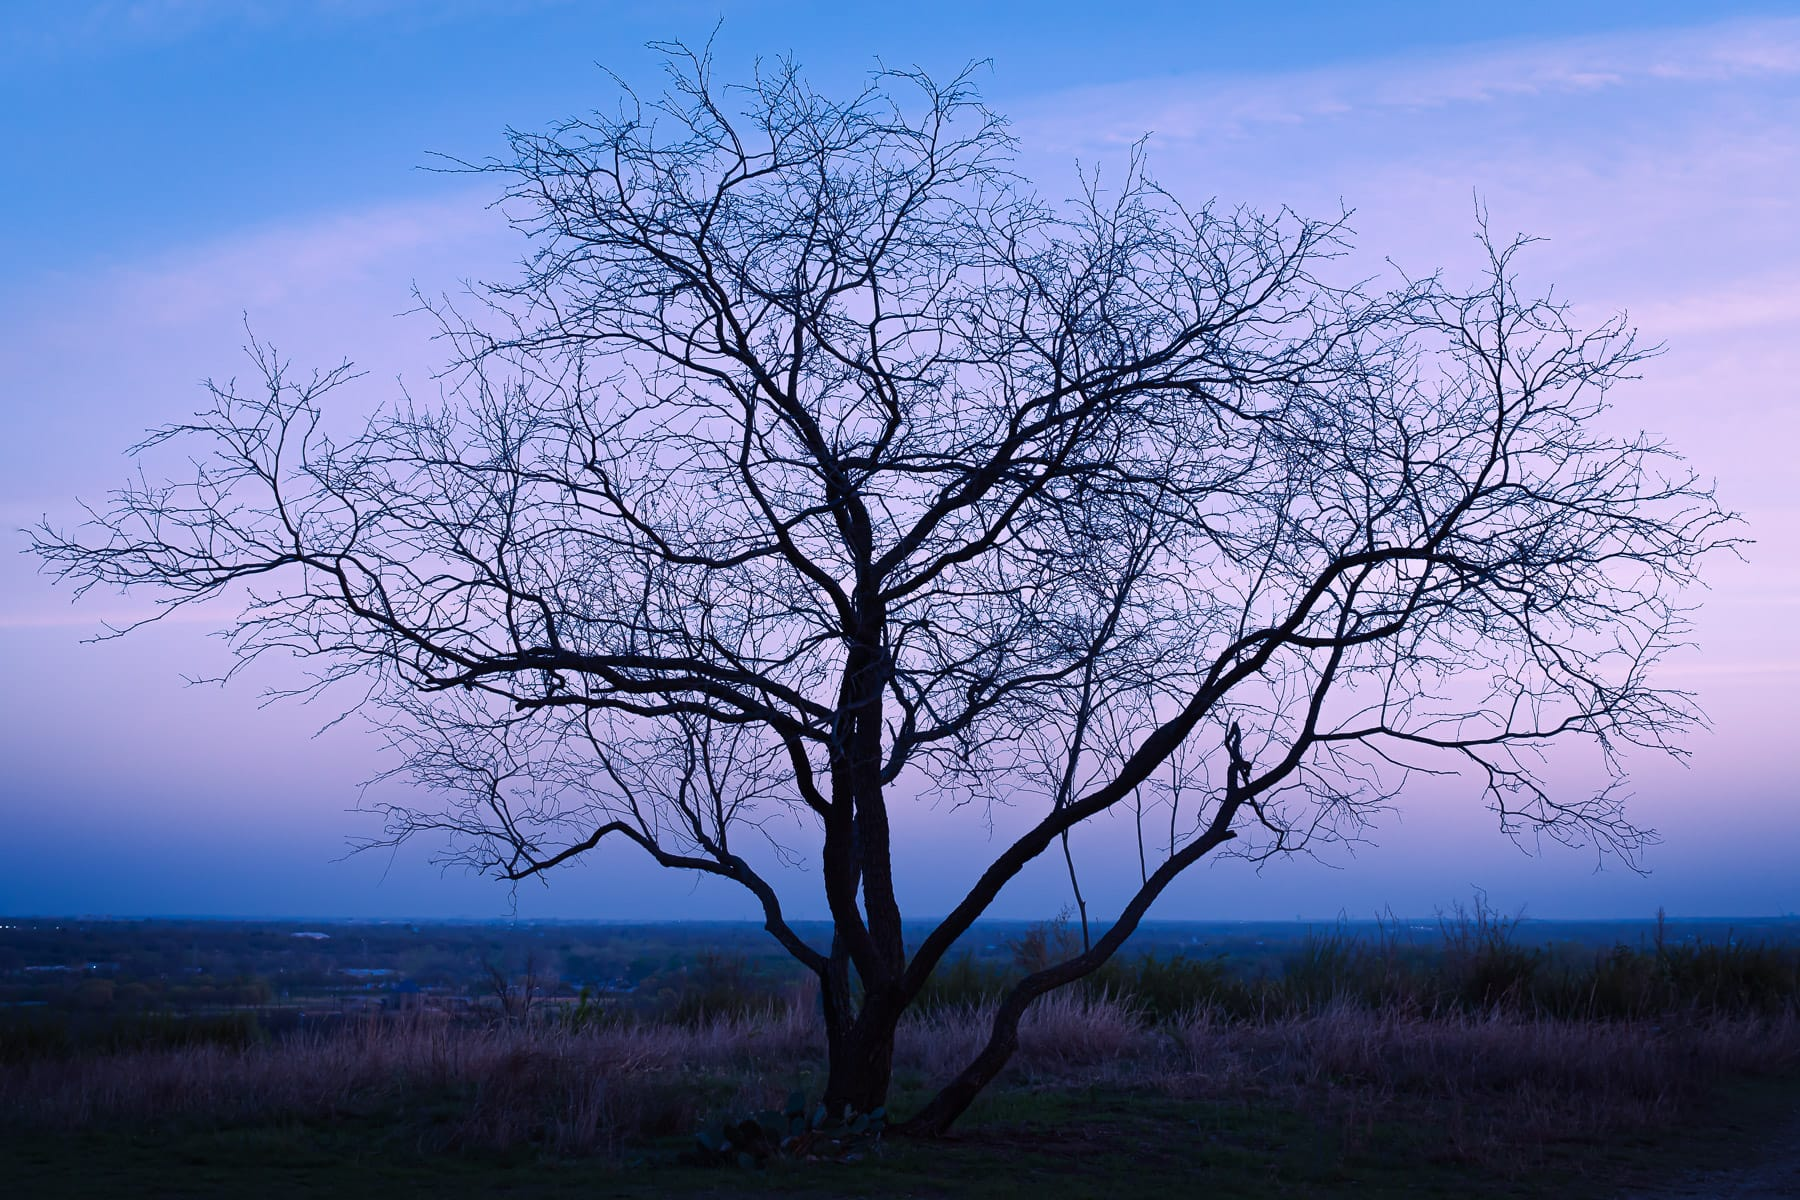 A tree at Tandy Hills Natural Area in Fort Worth, Texas, is silhouetted by the first light of dawn.